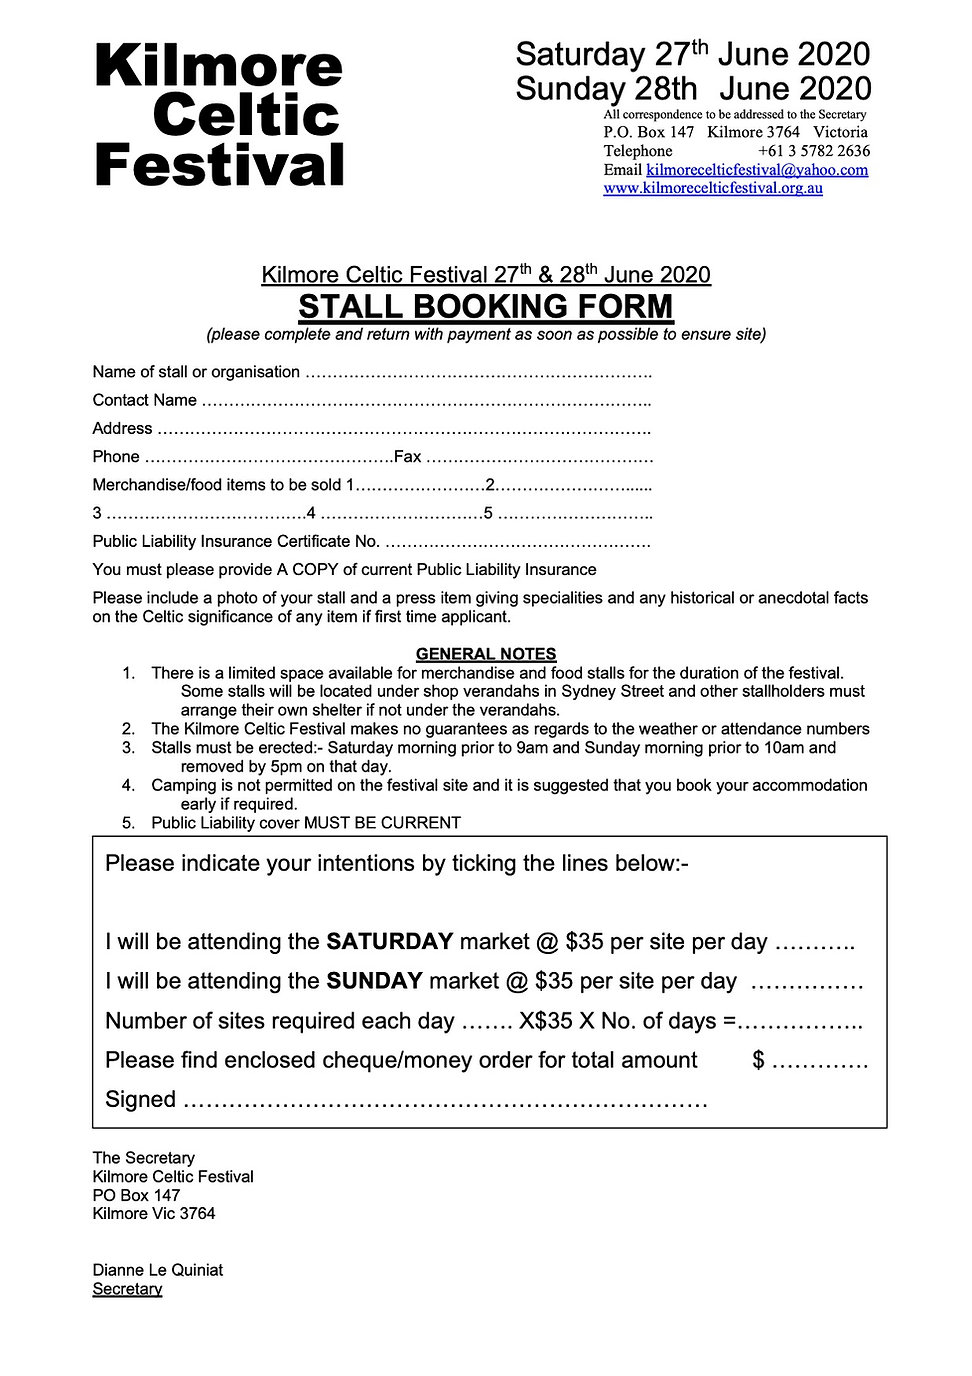 Stall Booking Form 2020.jpg